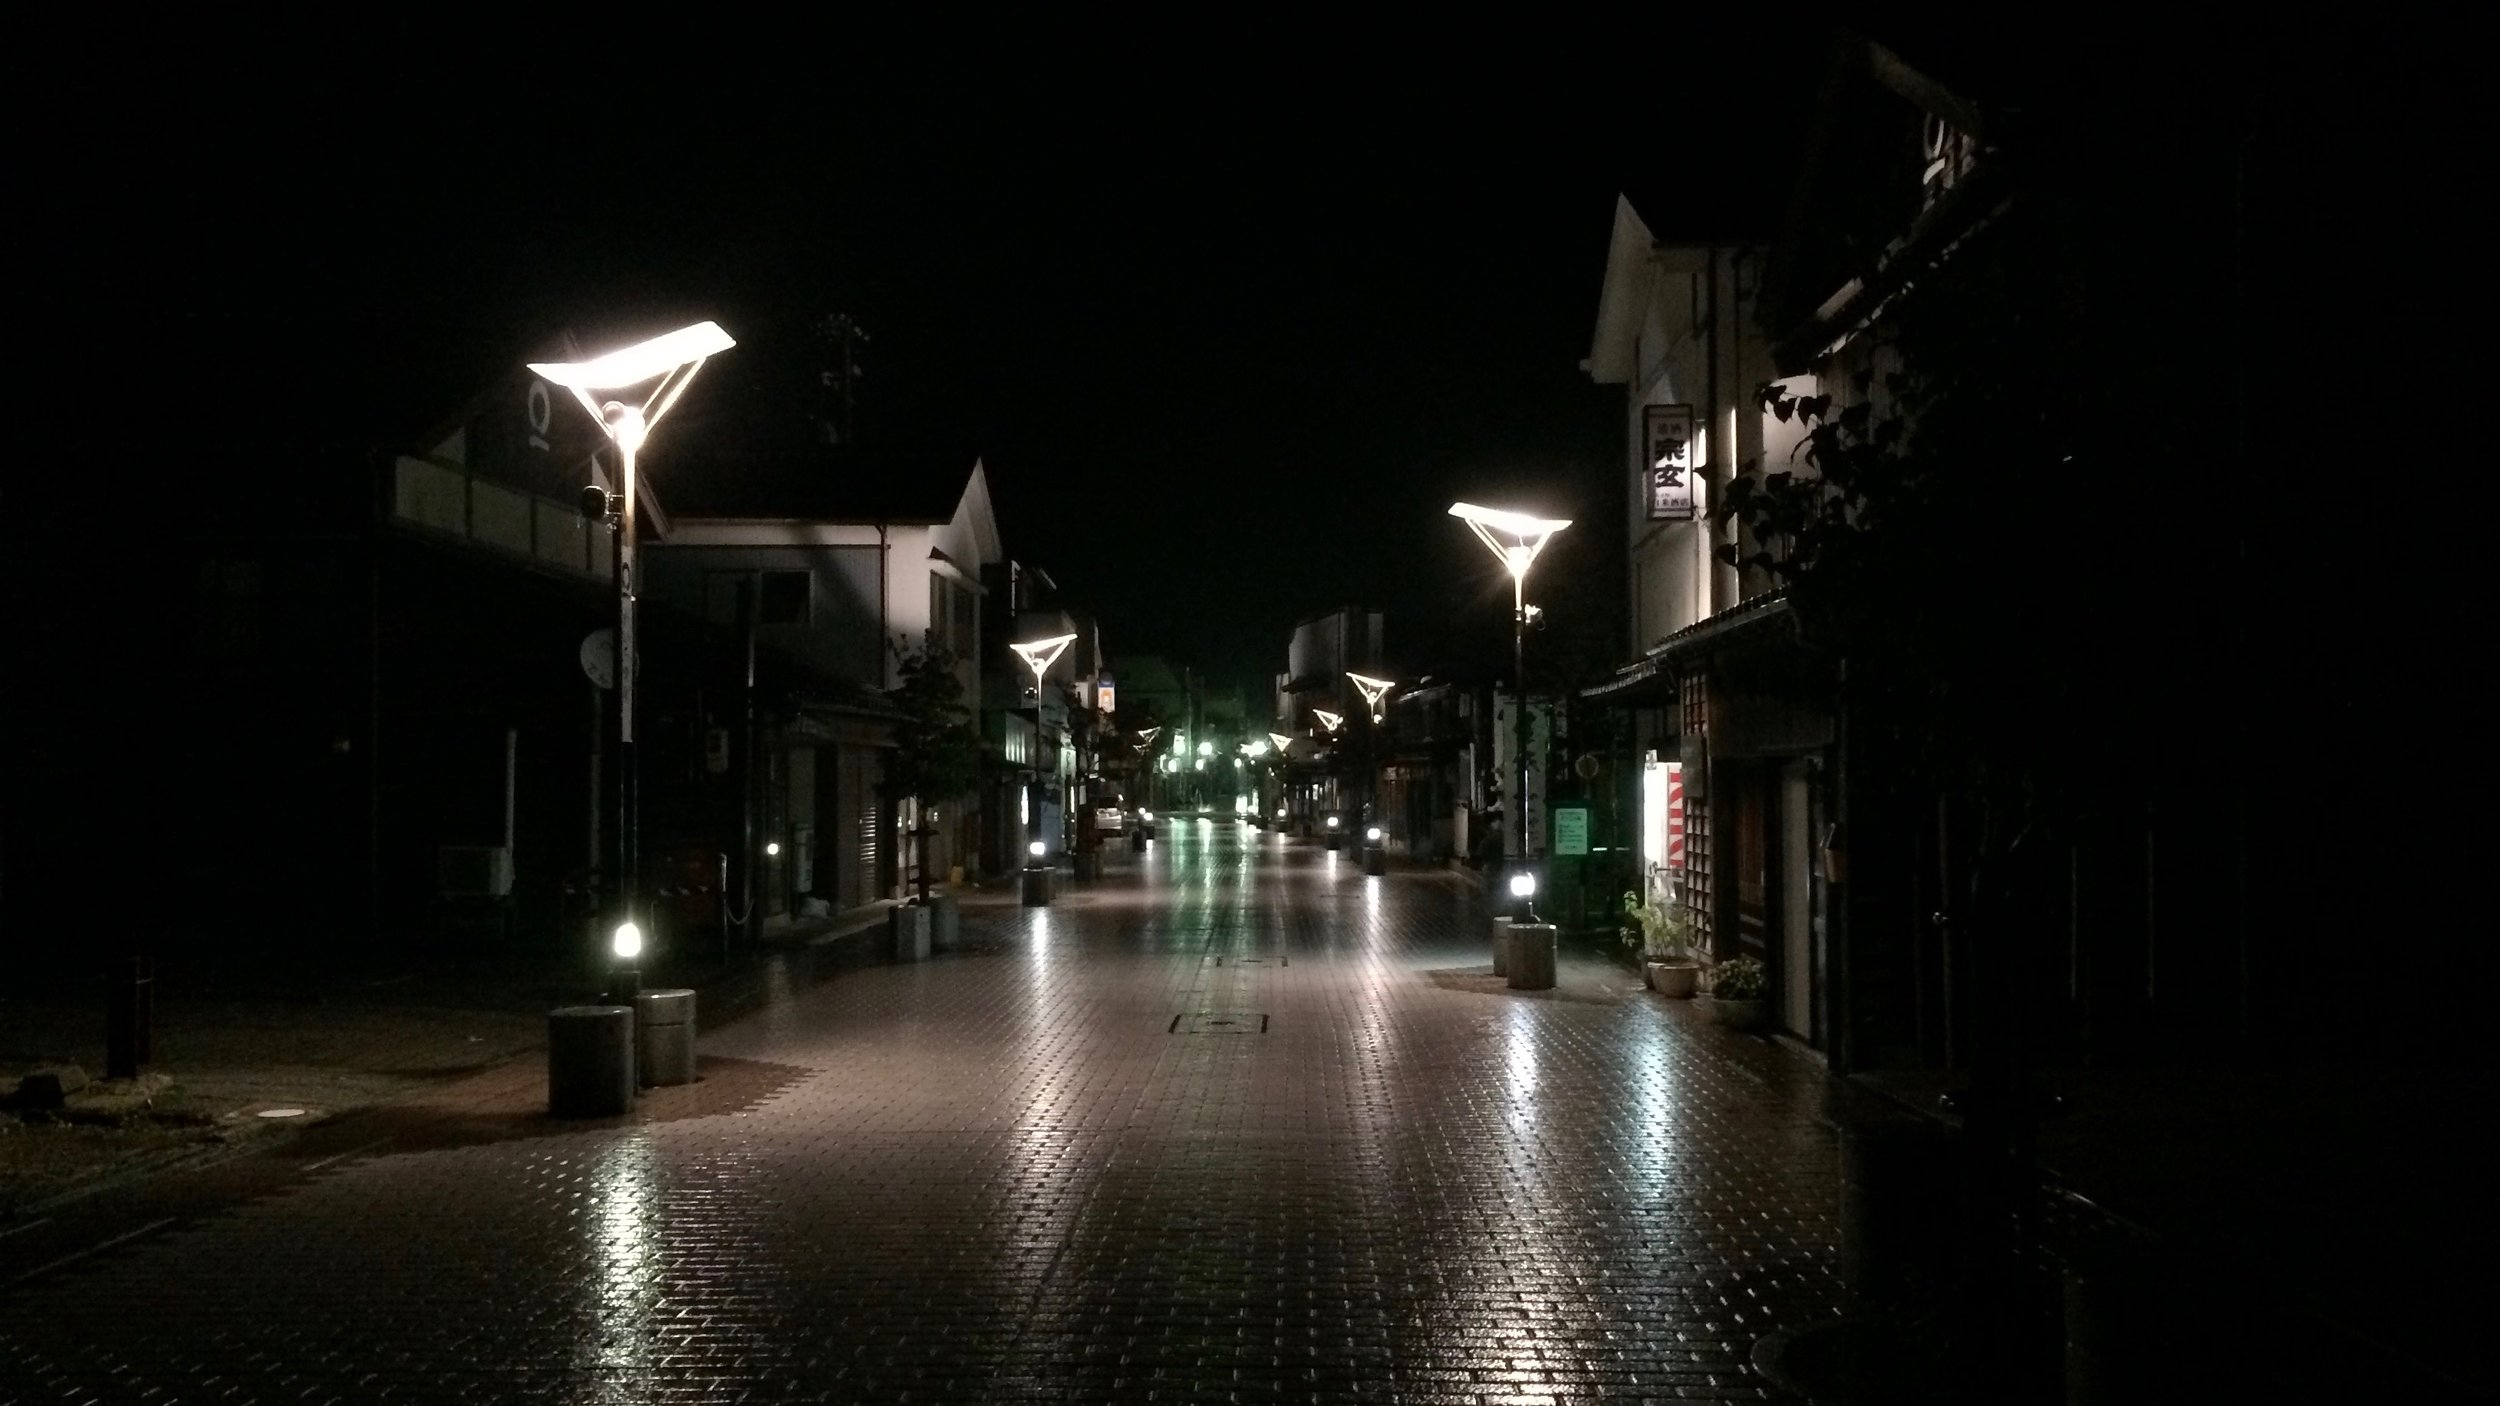 The quiet streets of Wajima in the late evening hours where we managed to find dinner.